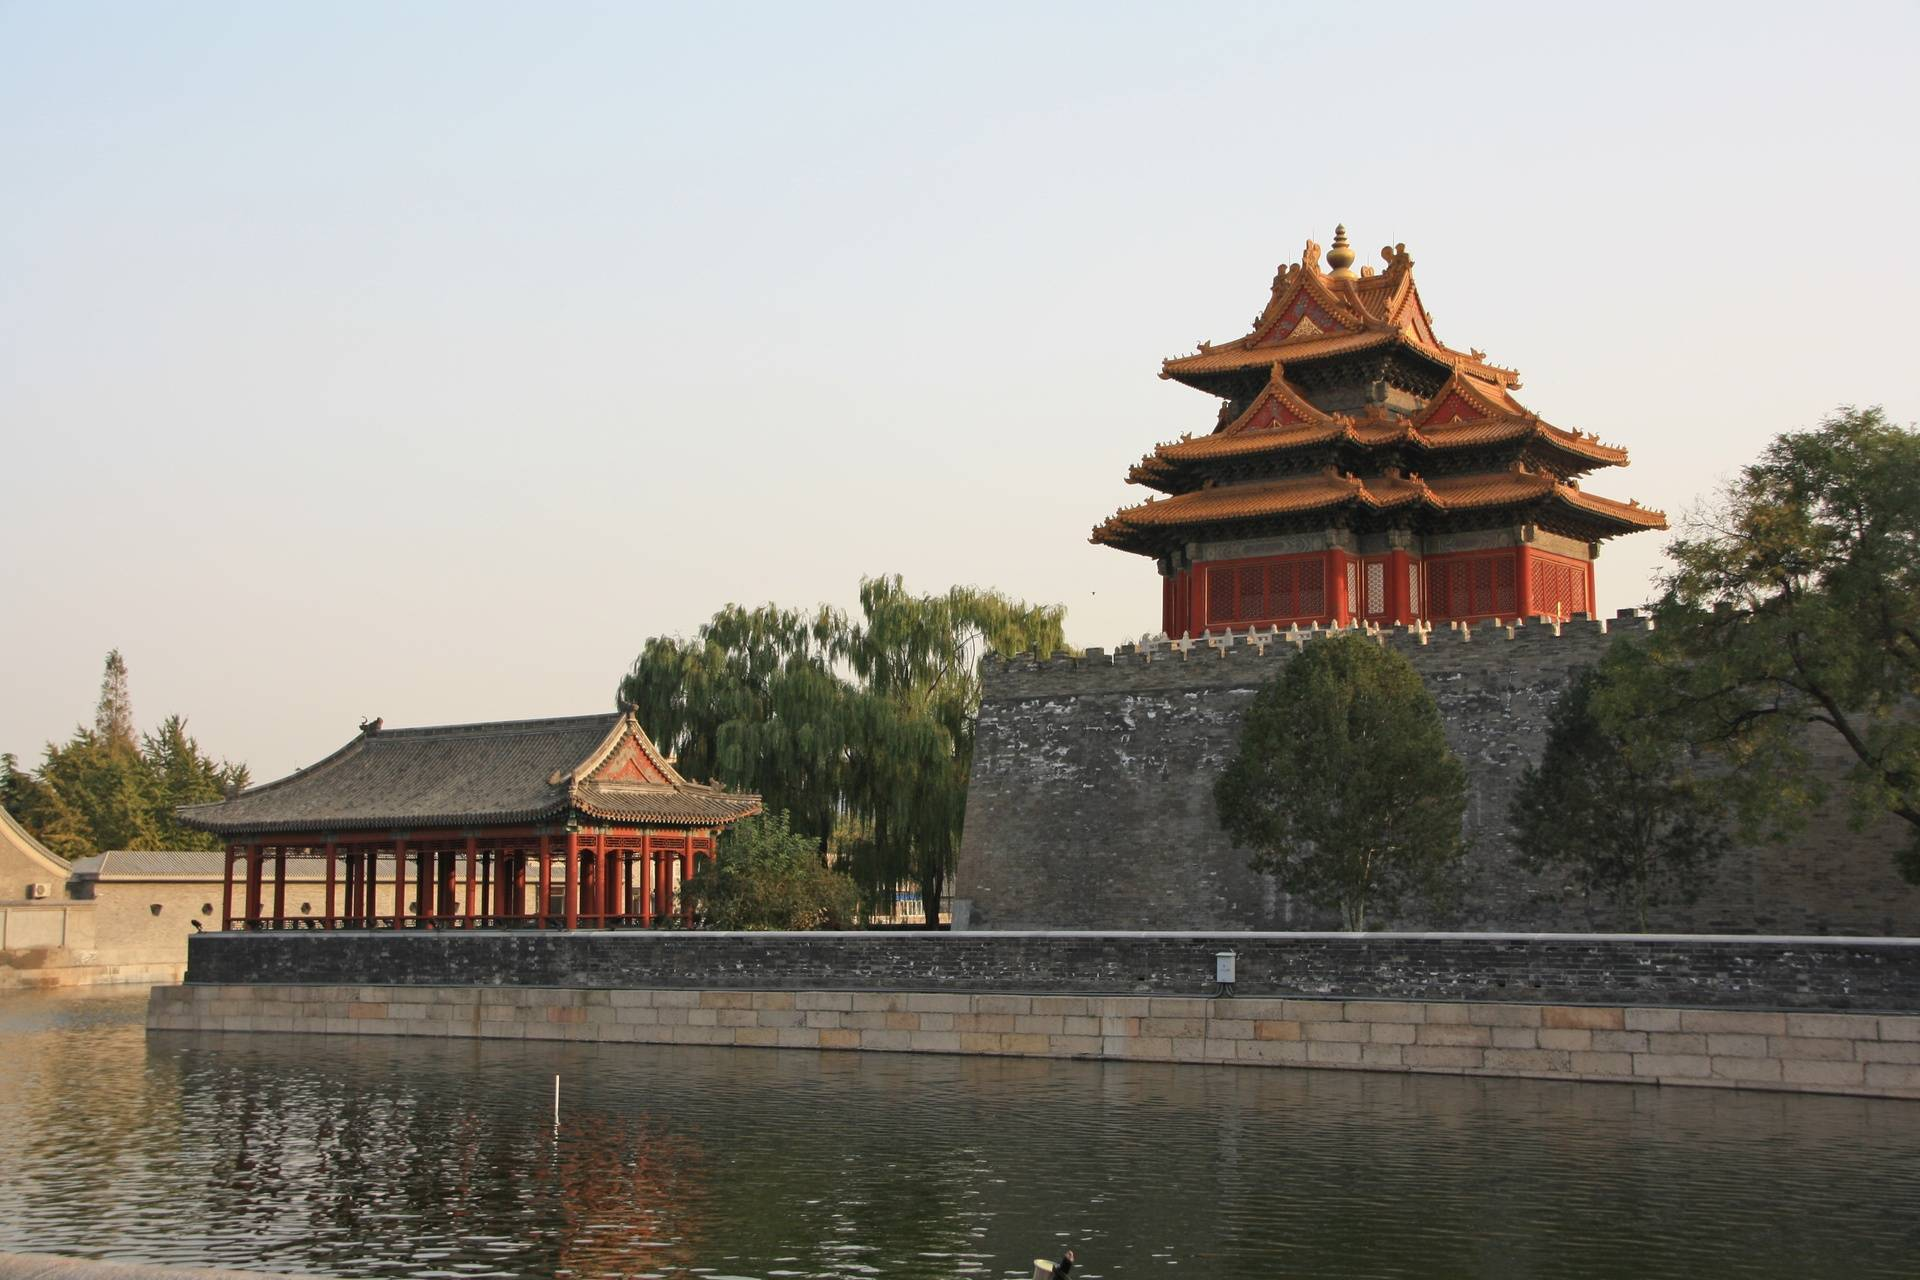 Moat and walls of Forbidden City in Beijing